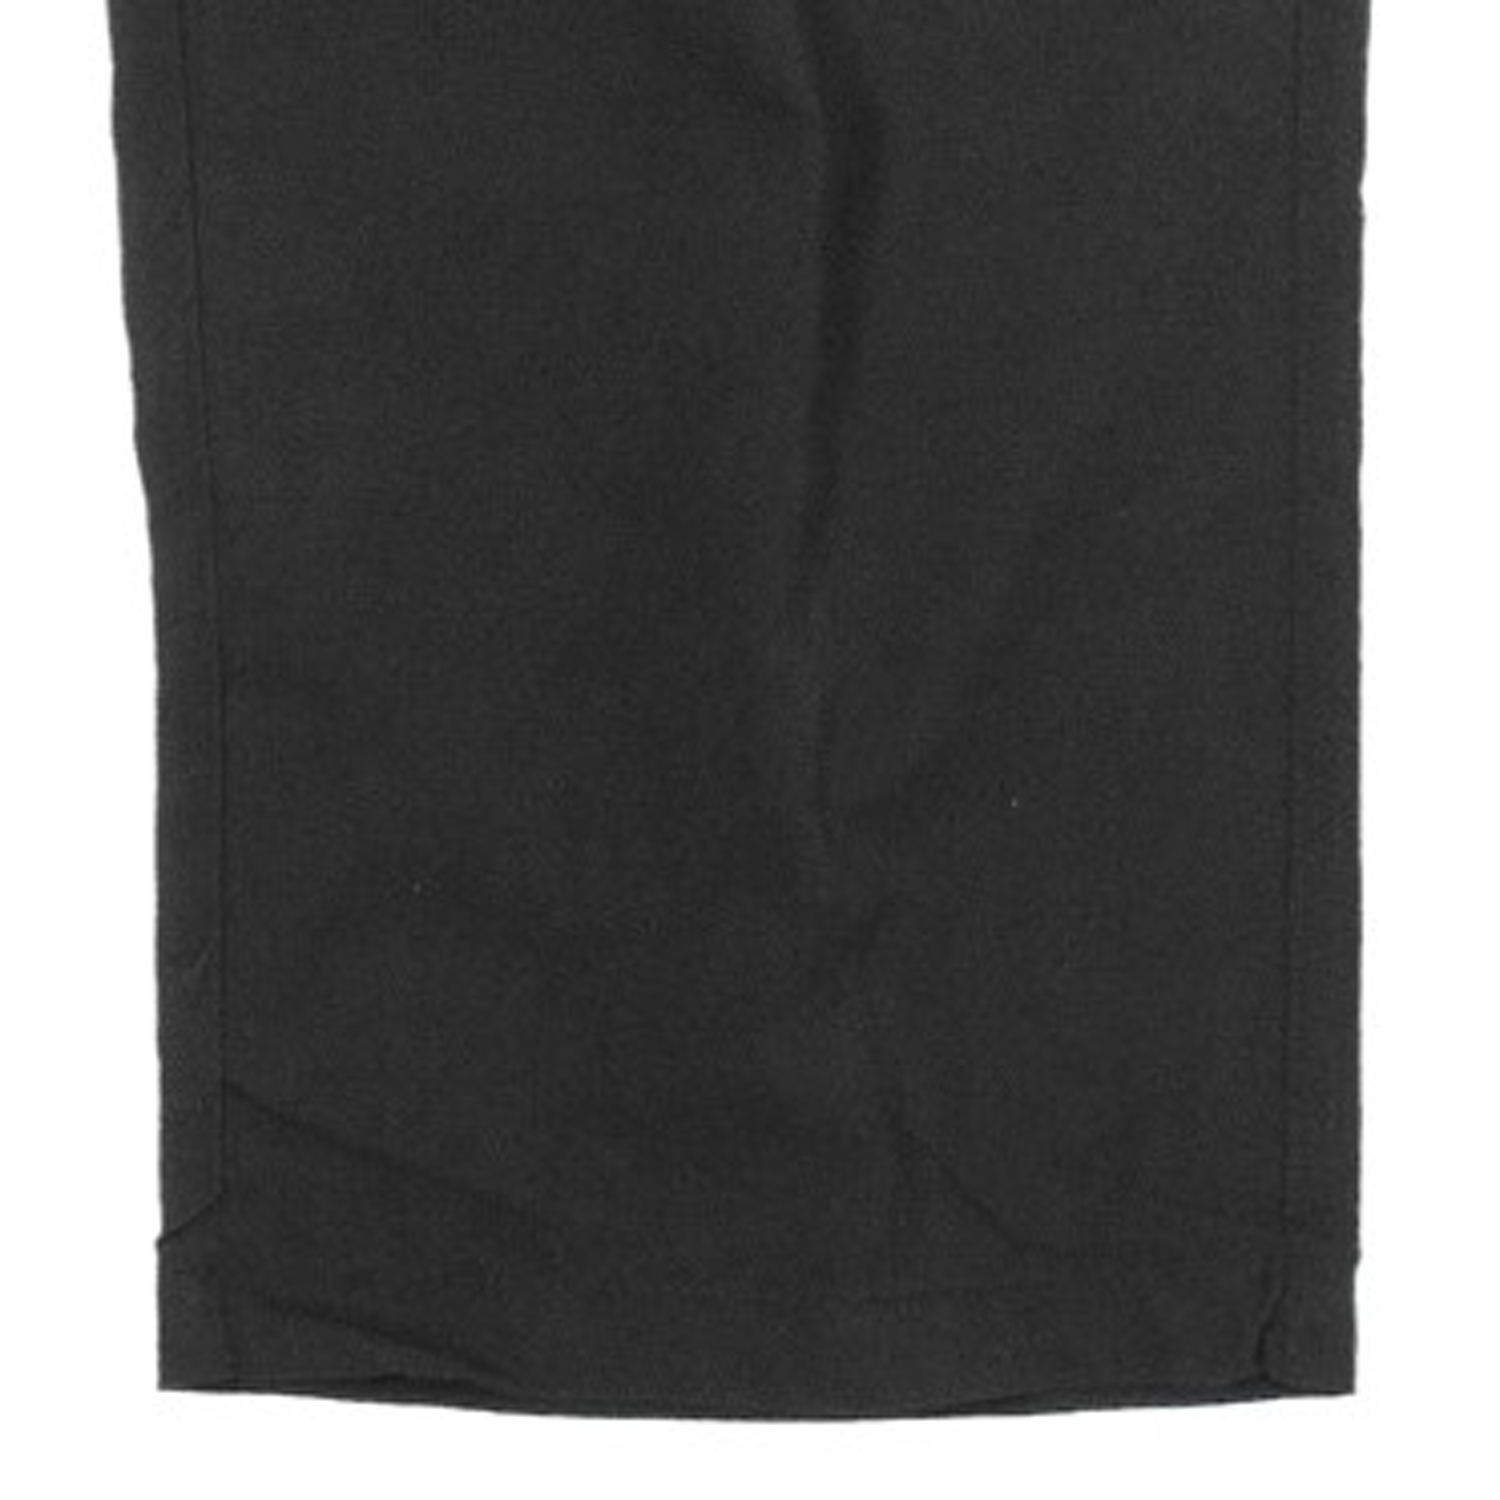 Detail Image to Micro fitness pants in black by Ahorn Sportswear up to oversize 10XL